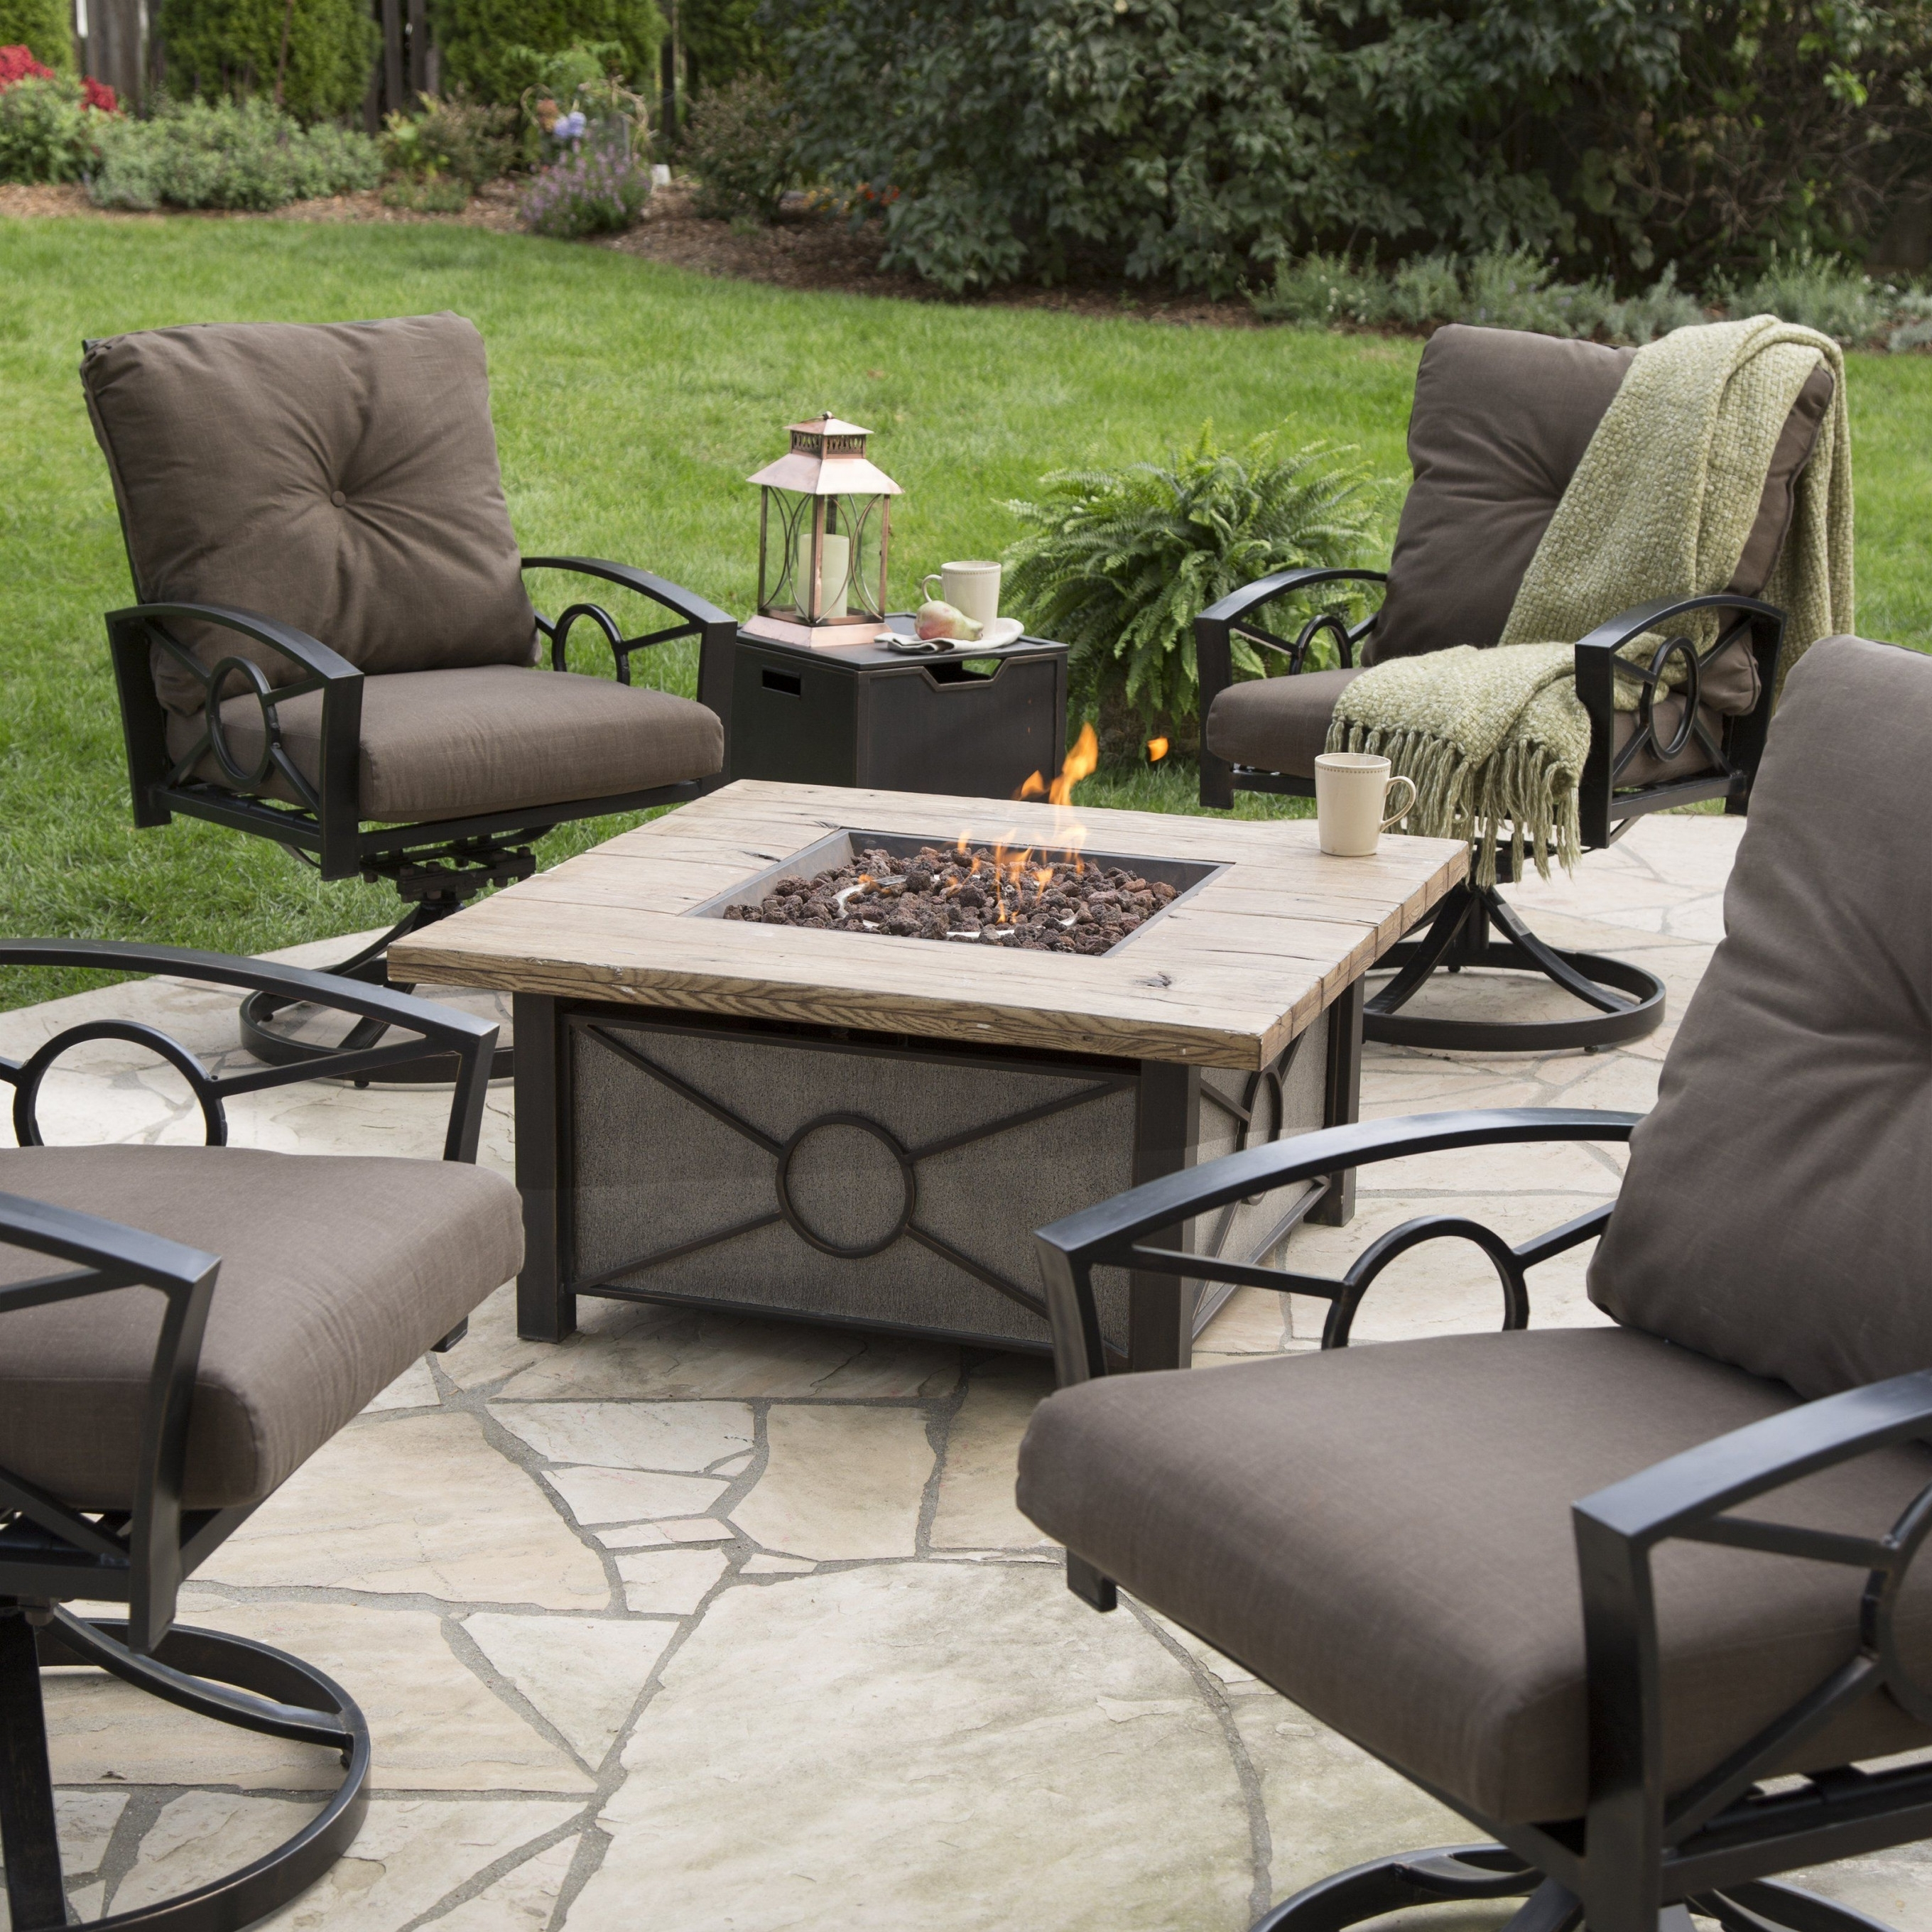 Hayneedle Patio Conversation Sets Throughout Fashionable Valuable Gas Fire Pit Conversation Set Red Ember Dillon Table Chat (View 11 of 20)